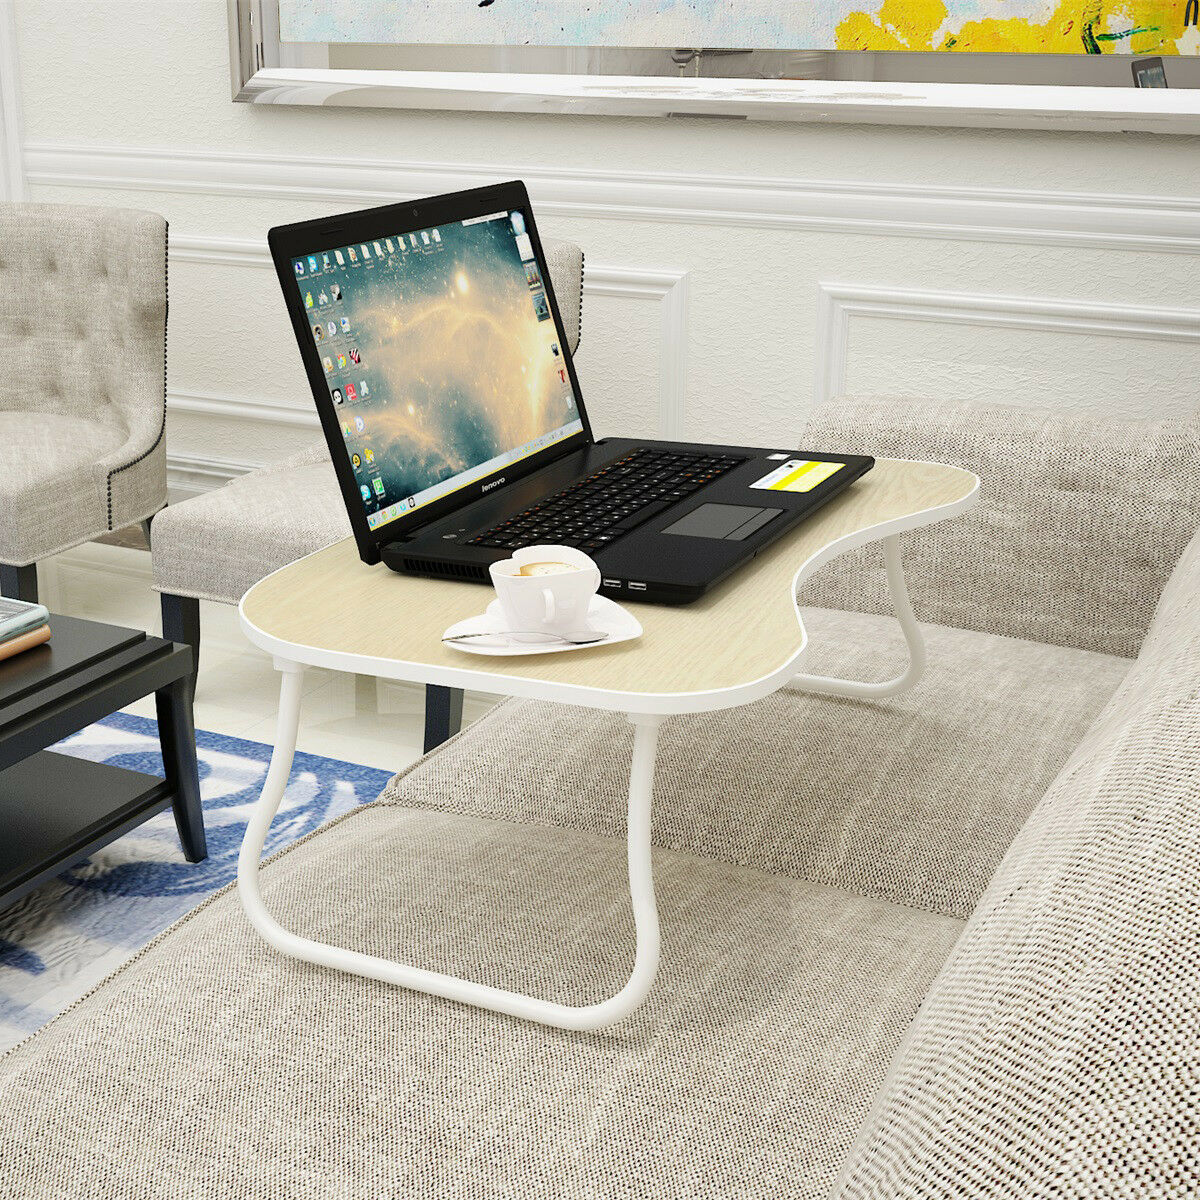 Folding Lap Desk Portable Standing Bed Desk Computer Laptop Stand Laptop  Table